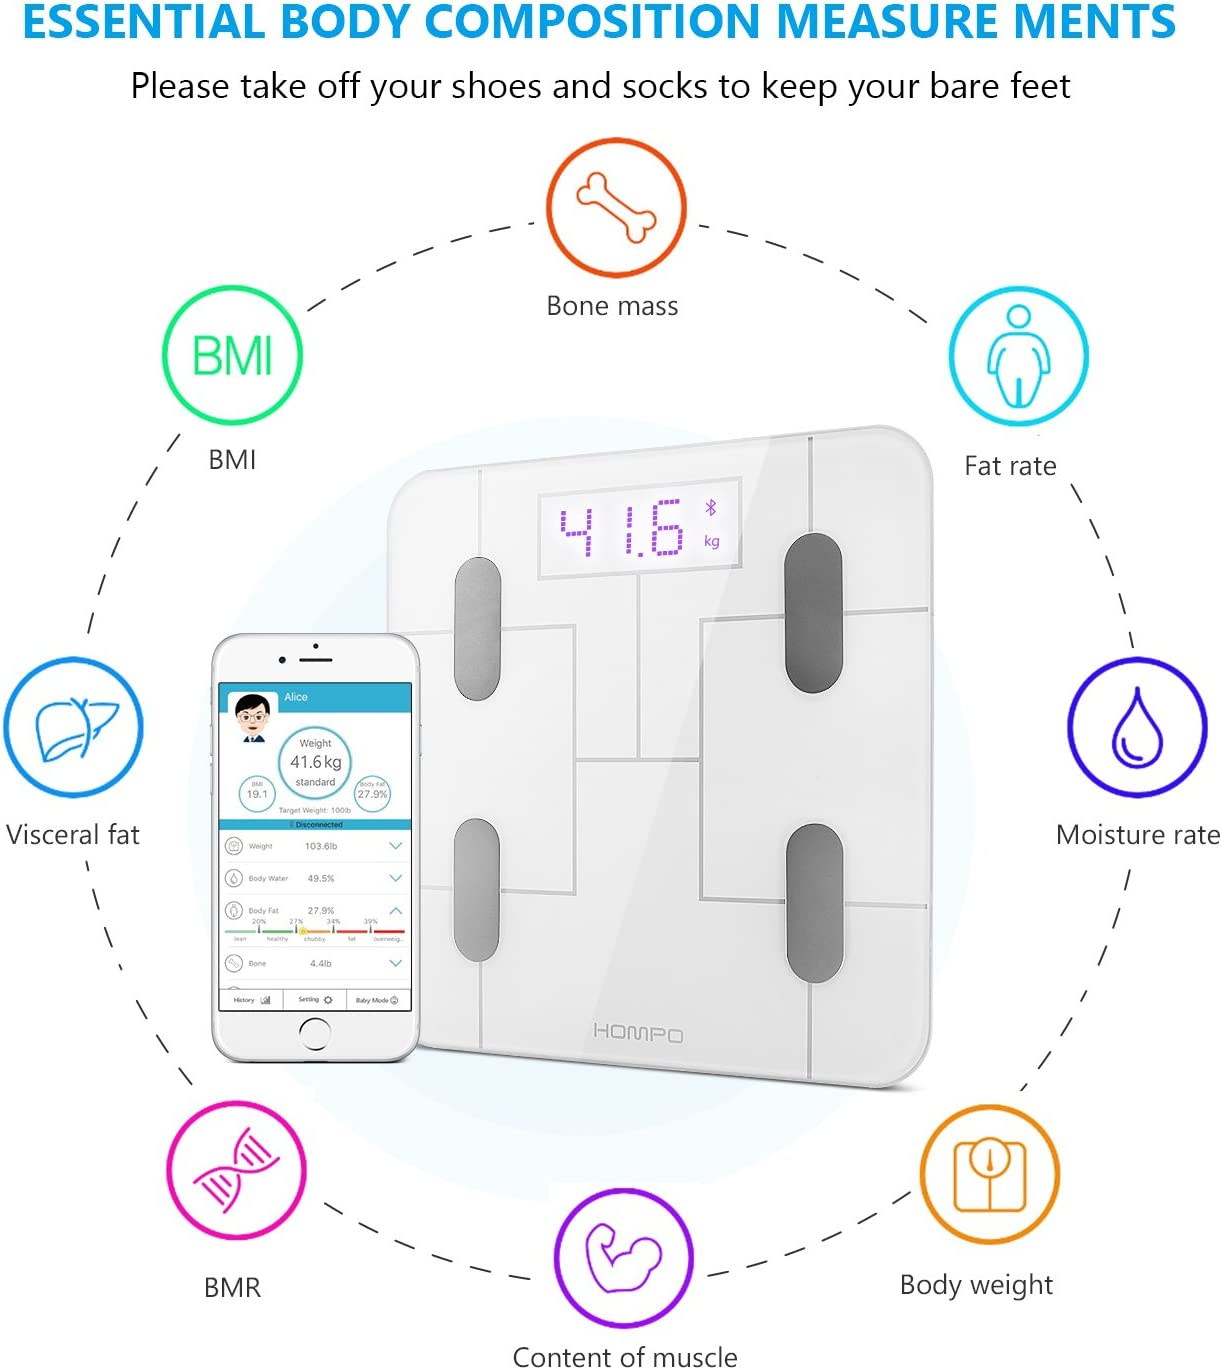 Body Fat Scale, HOMPO Bluetooth Digital Bathroom Smart Wireless Body Fat Analyzer Scale with Smartphone App LED Display, Measures BMI, Body Fat, Muscle Mass, Water Weight, and Bone Mass